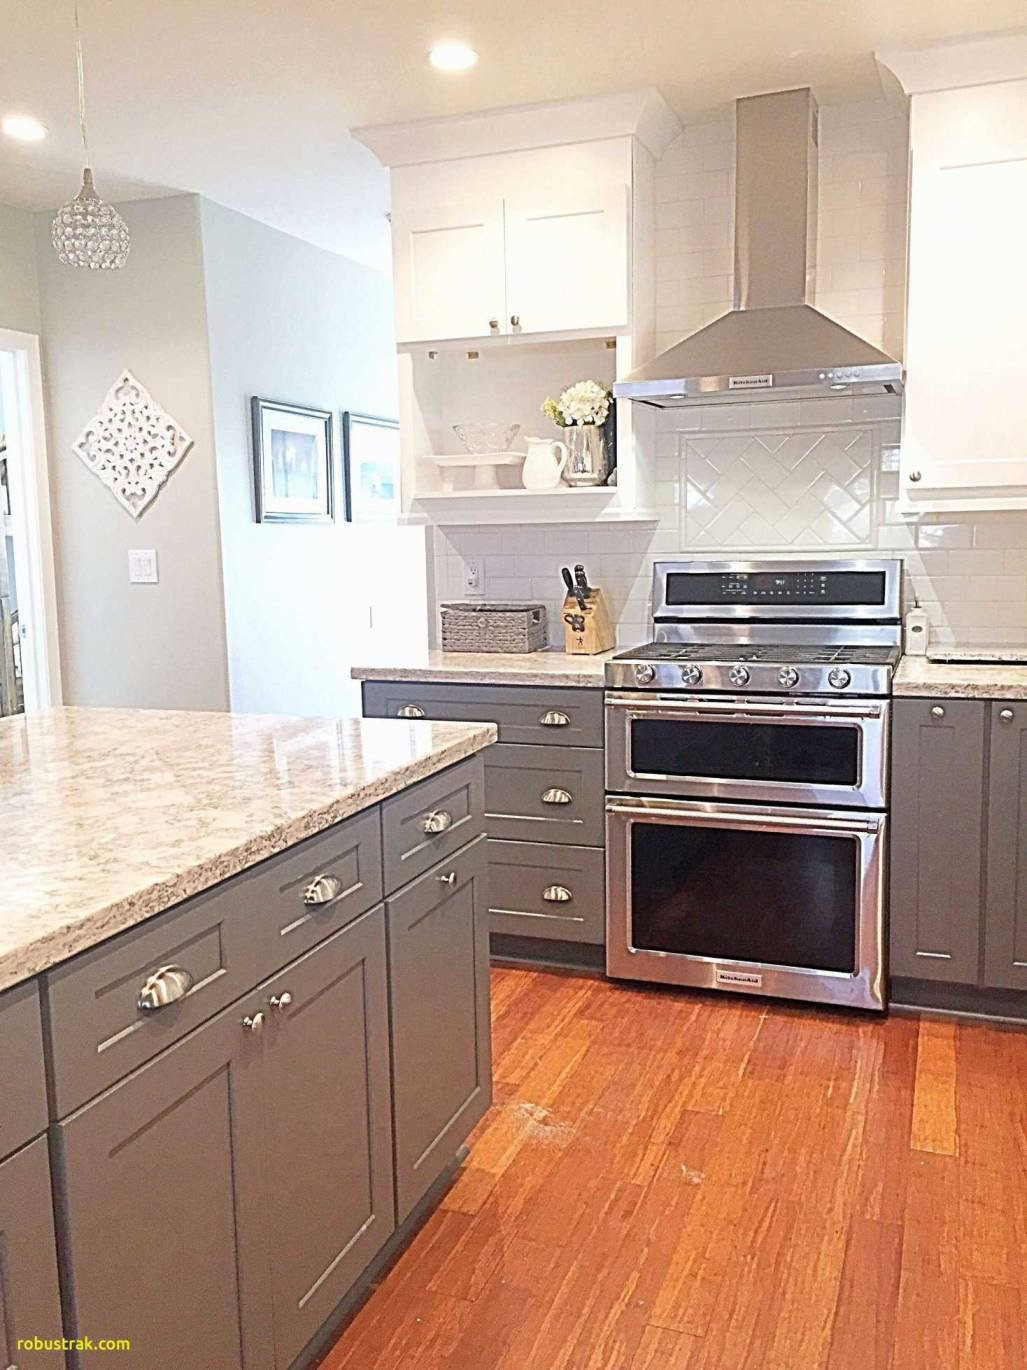 hardwood floor installation quote of 25 kitchen cabinet painting labor cost www princesofkingsroad com page within cabinet painting labor cost 2018